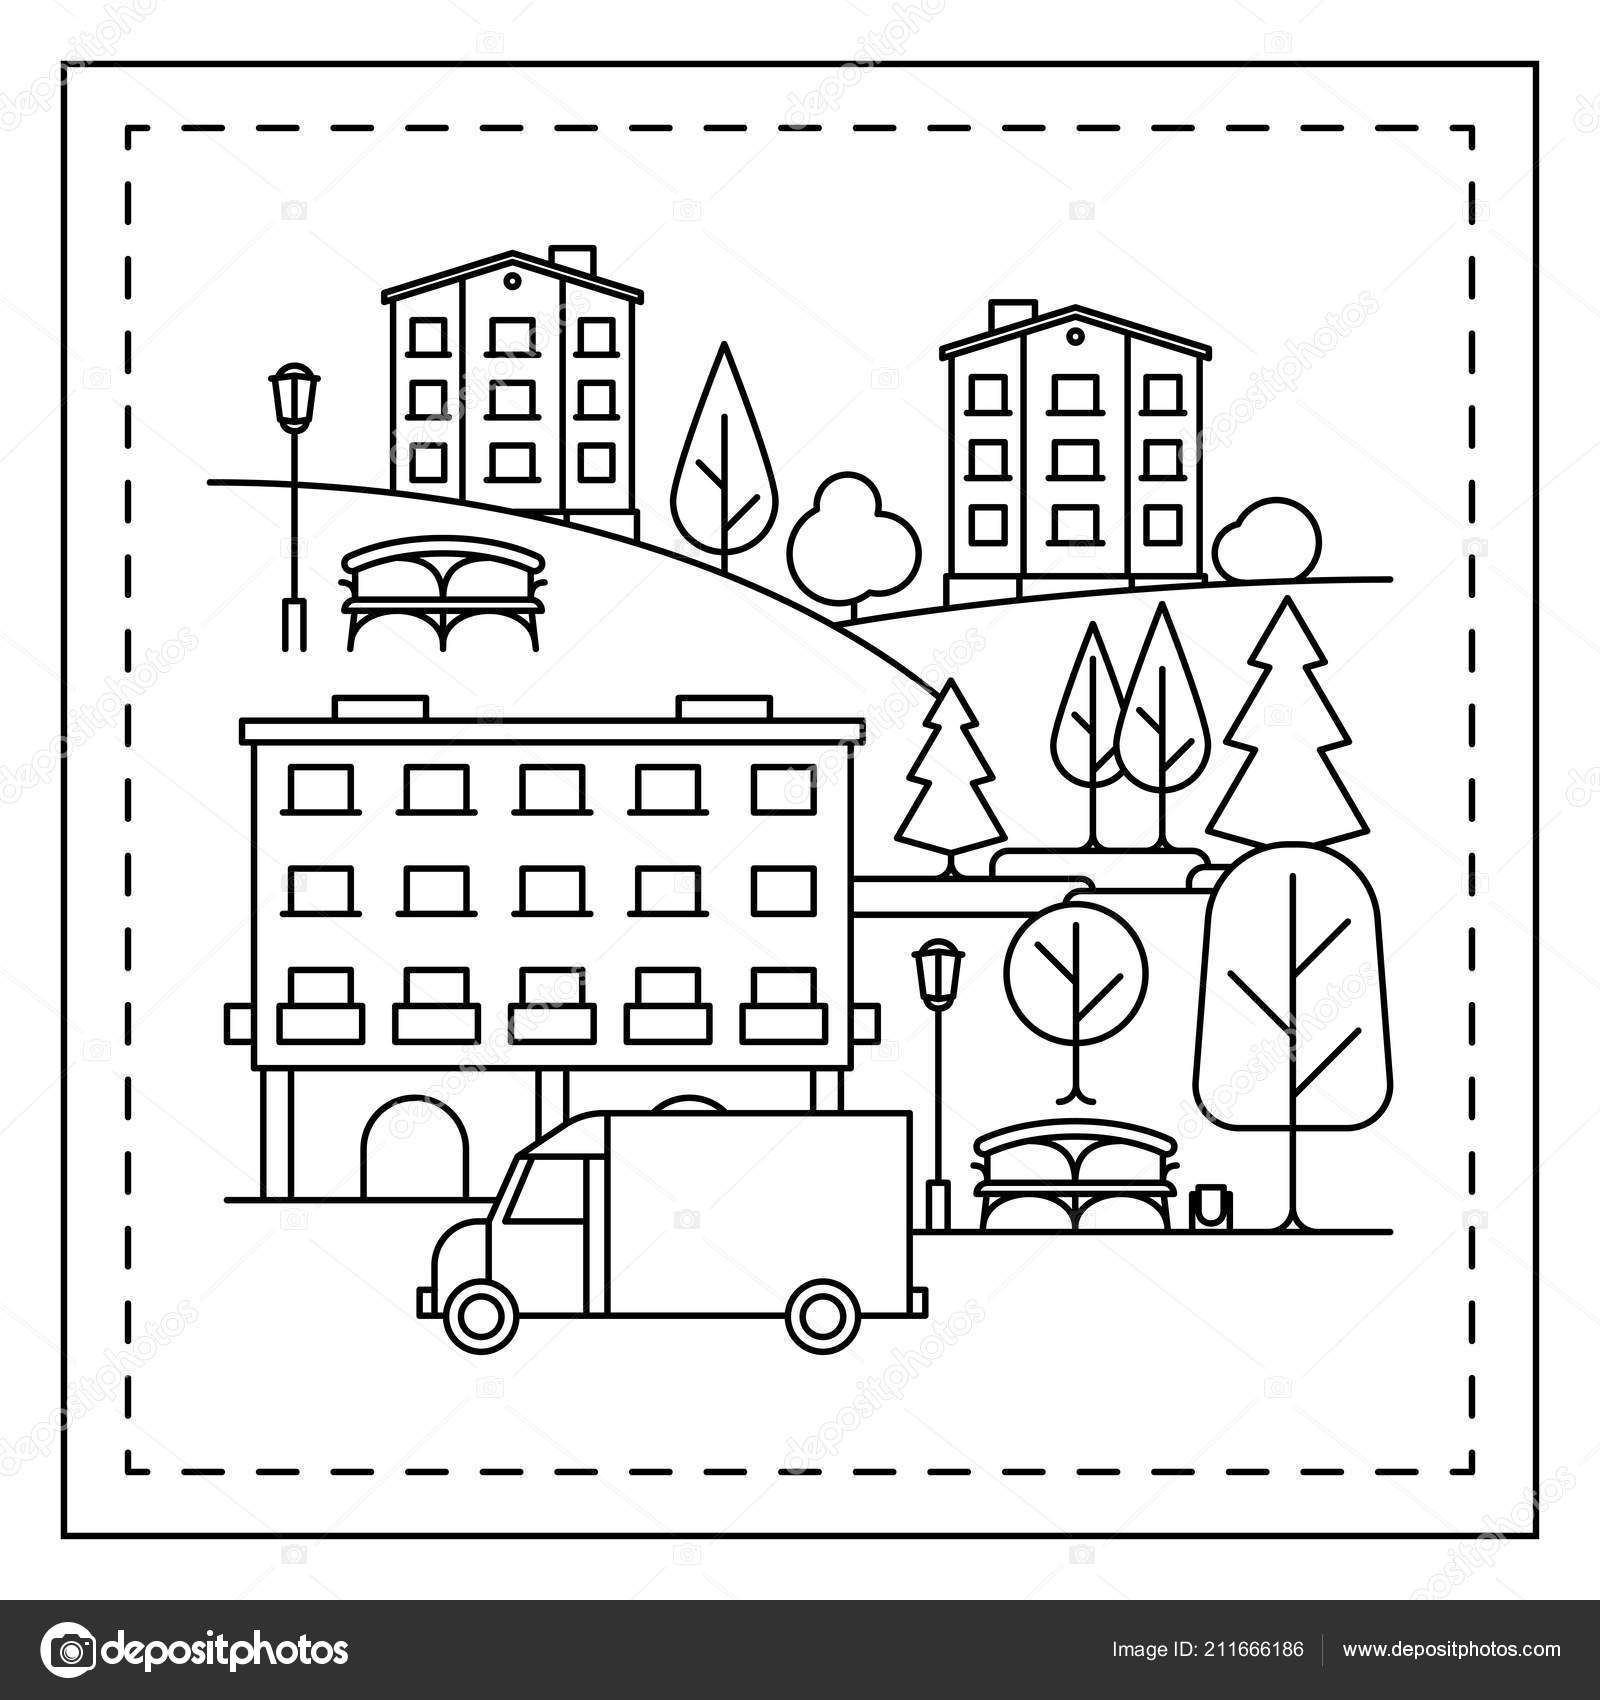 Coloring Page With City Landscape Vector Image By C Ssstocker Vector Stock 211666186